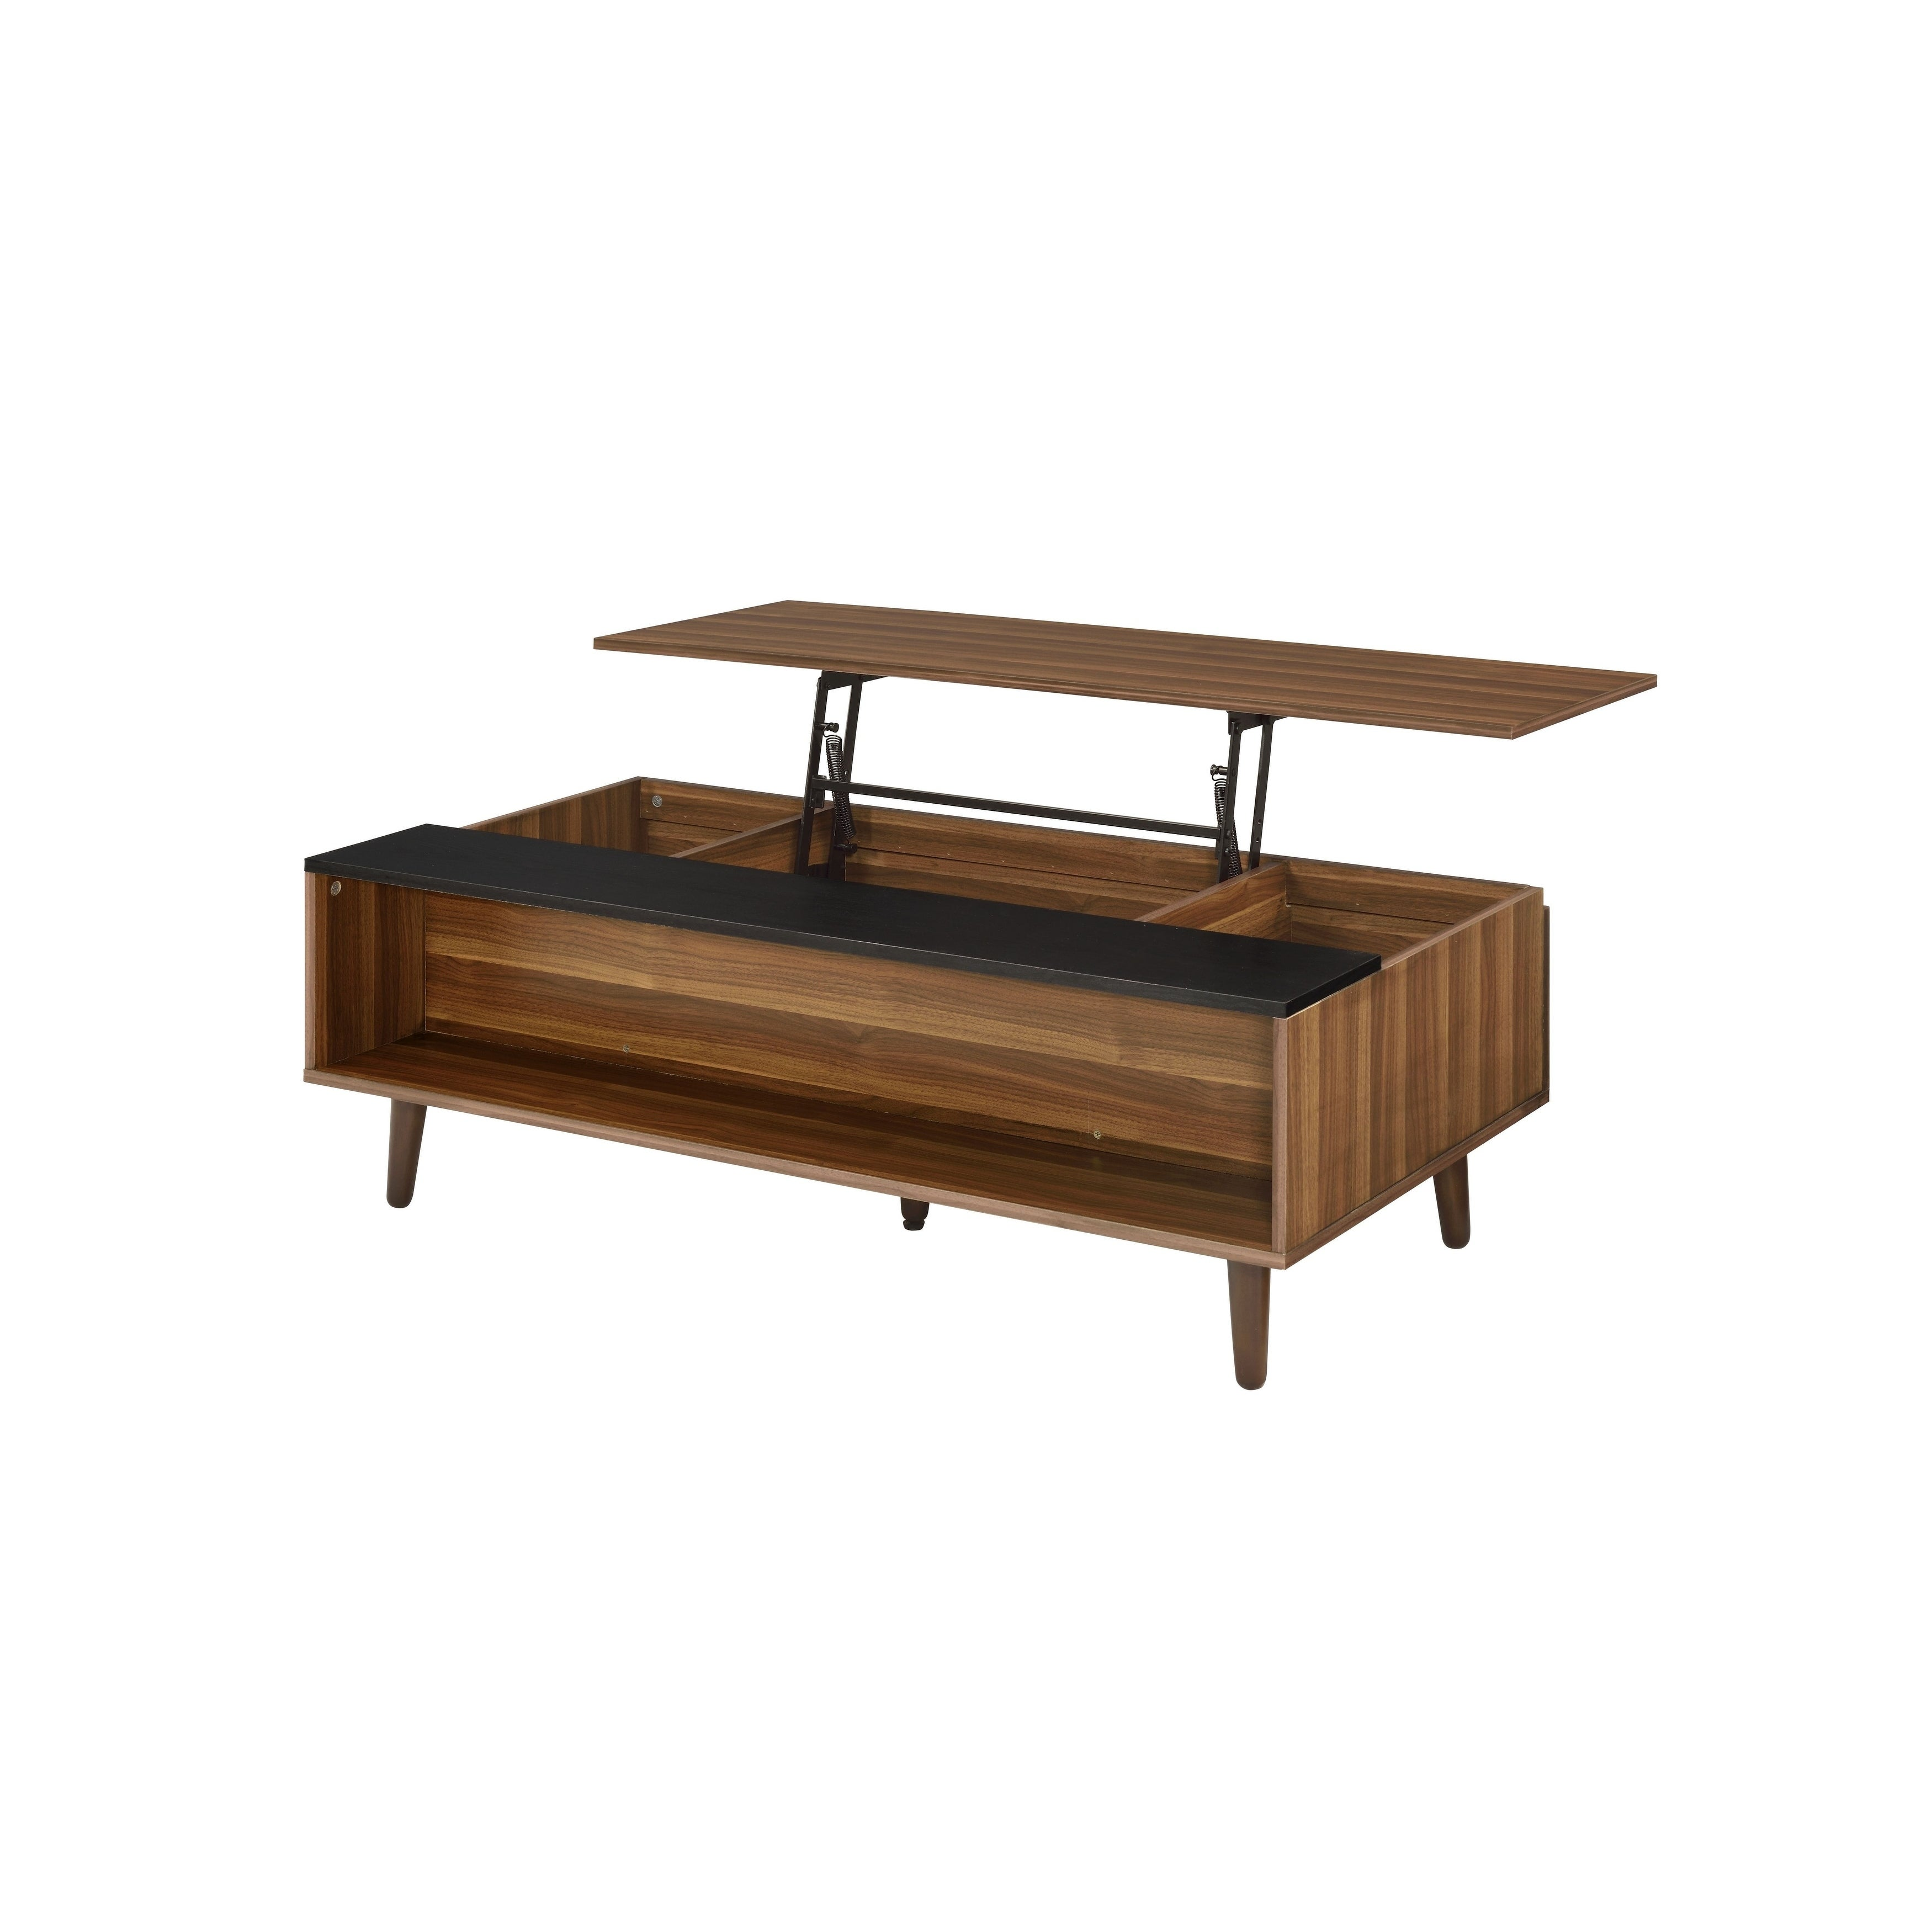 Wooden Coffee Table With Lift Top Storage And 1 Open Shelf Walnut Brown Overstock 30968323